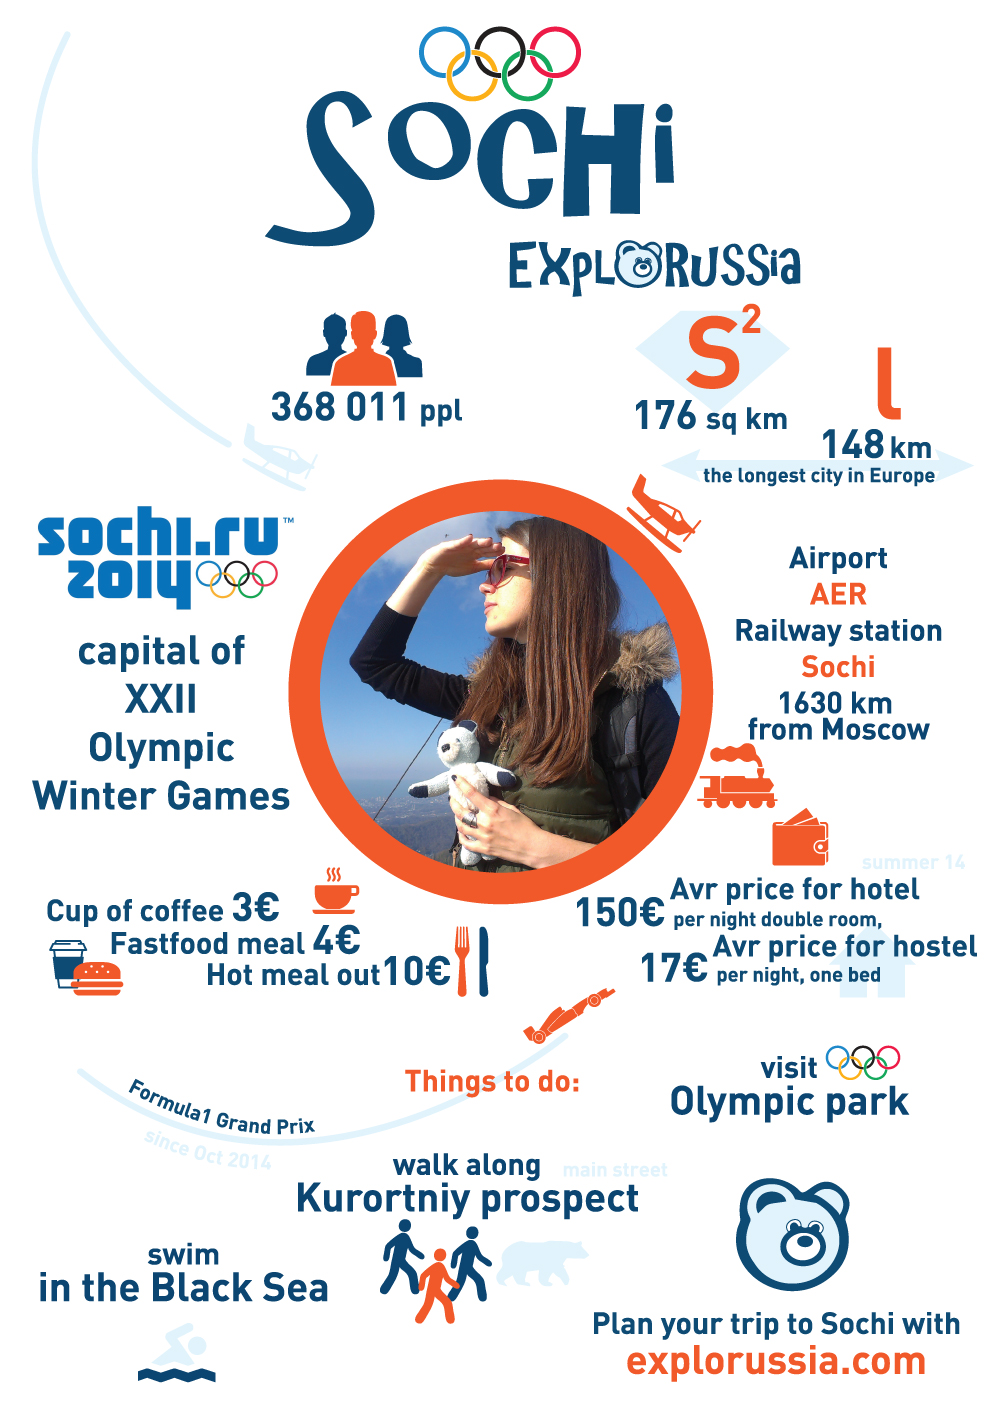 08 ExploRussia-blog-Infographics-about-Sochi-Olympics-capital-Formula-1-city